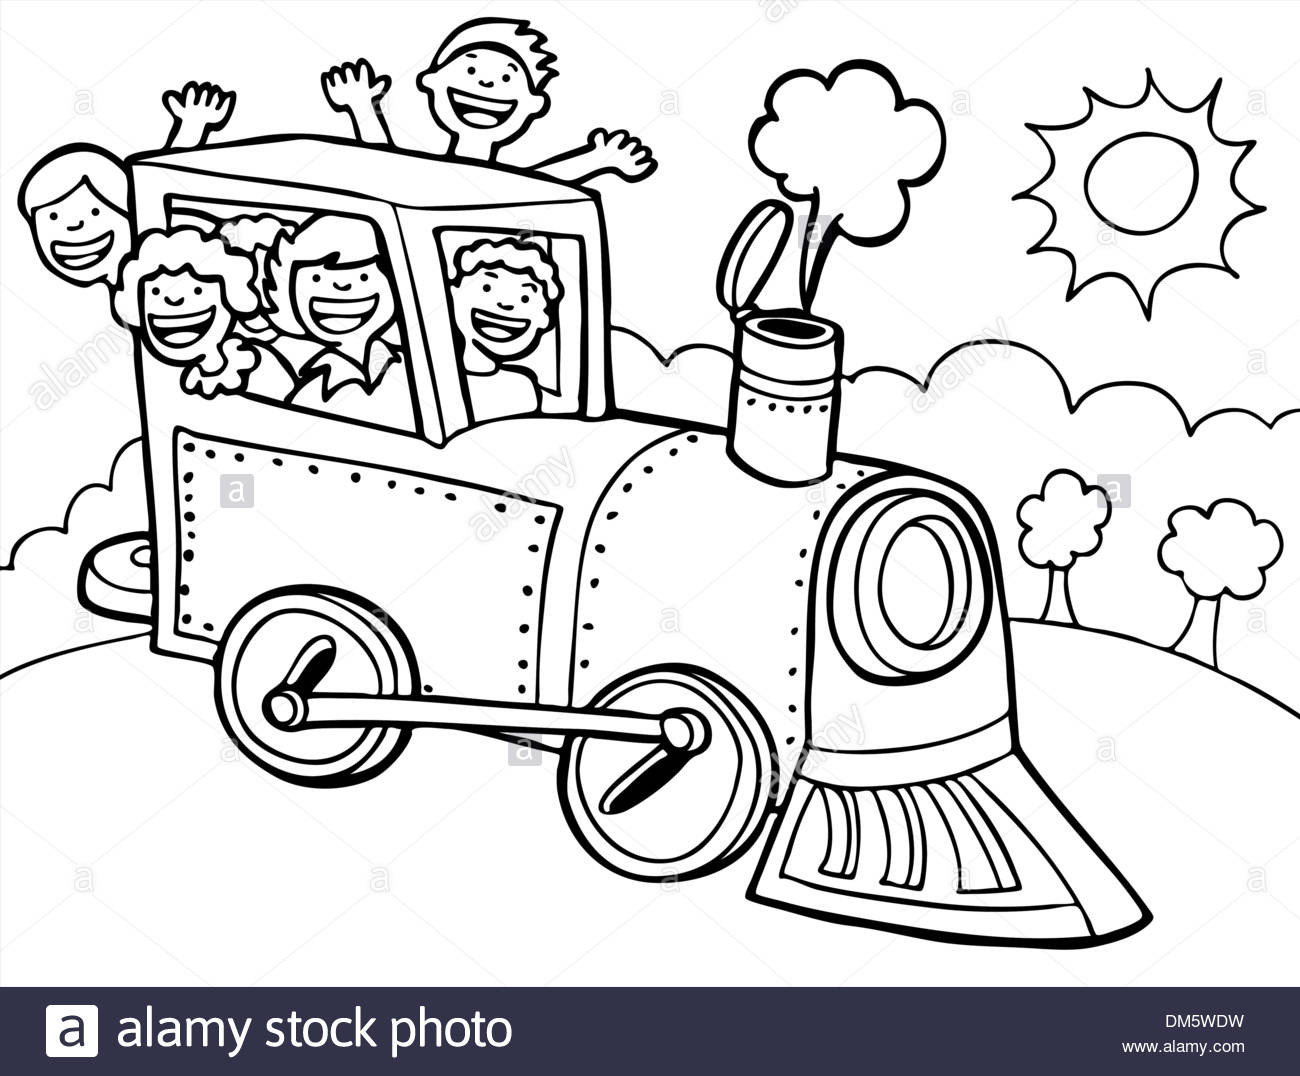 Child Train Ride Black And White Stock Vector Art Illustration